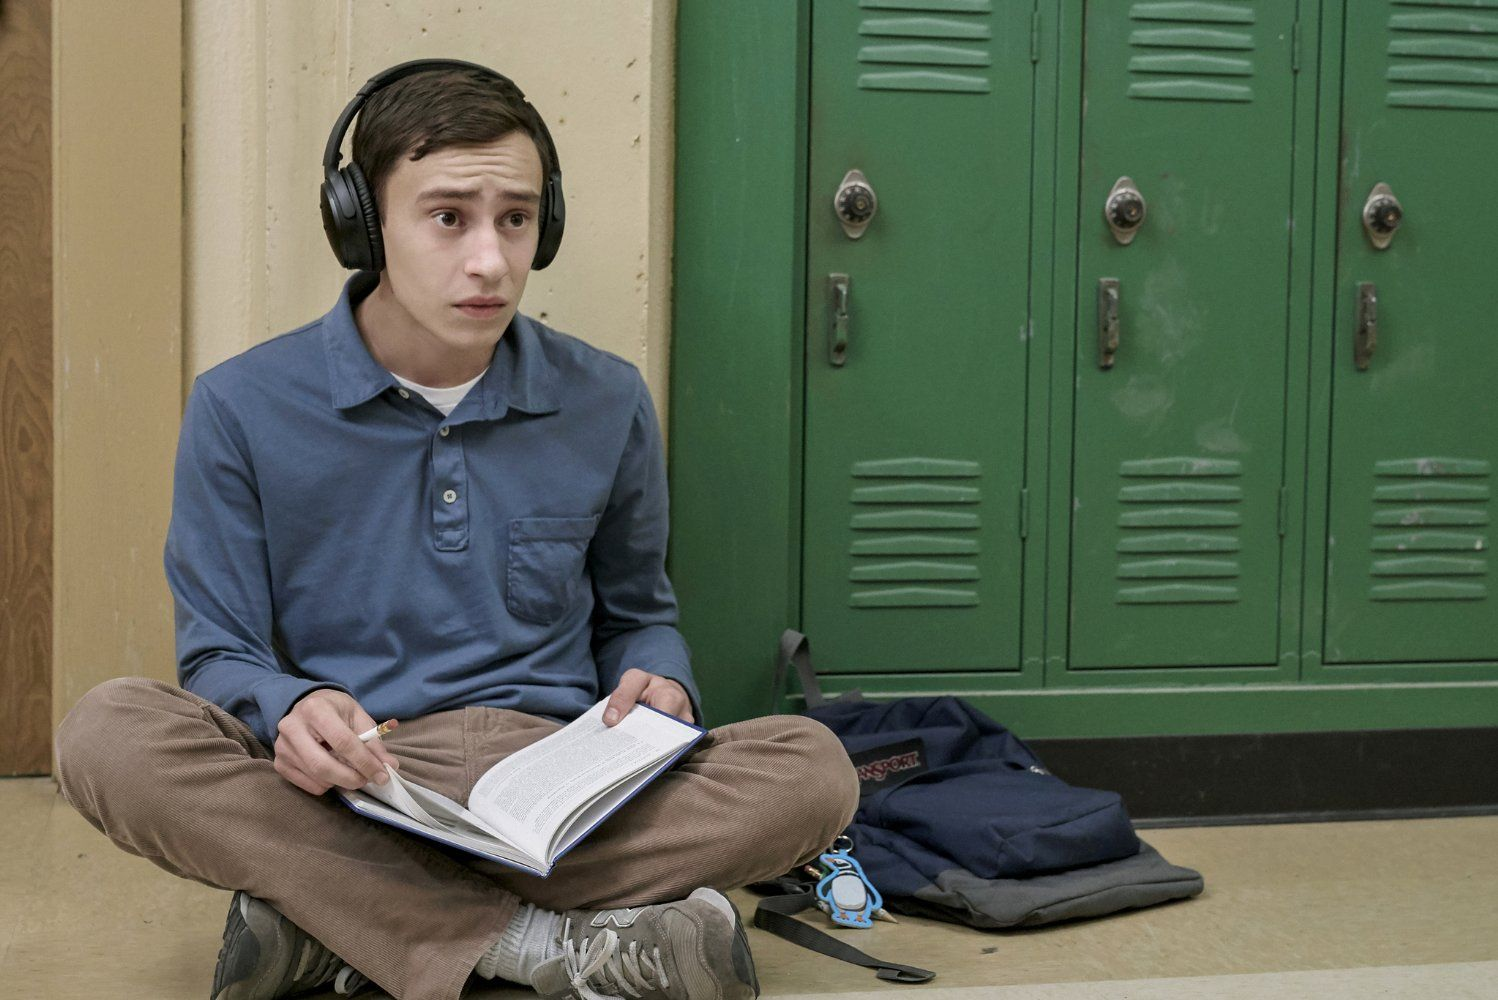 Keir Gilchrist as Sam Gardner in Atypical (2017) Serie